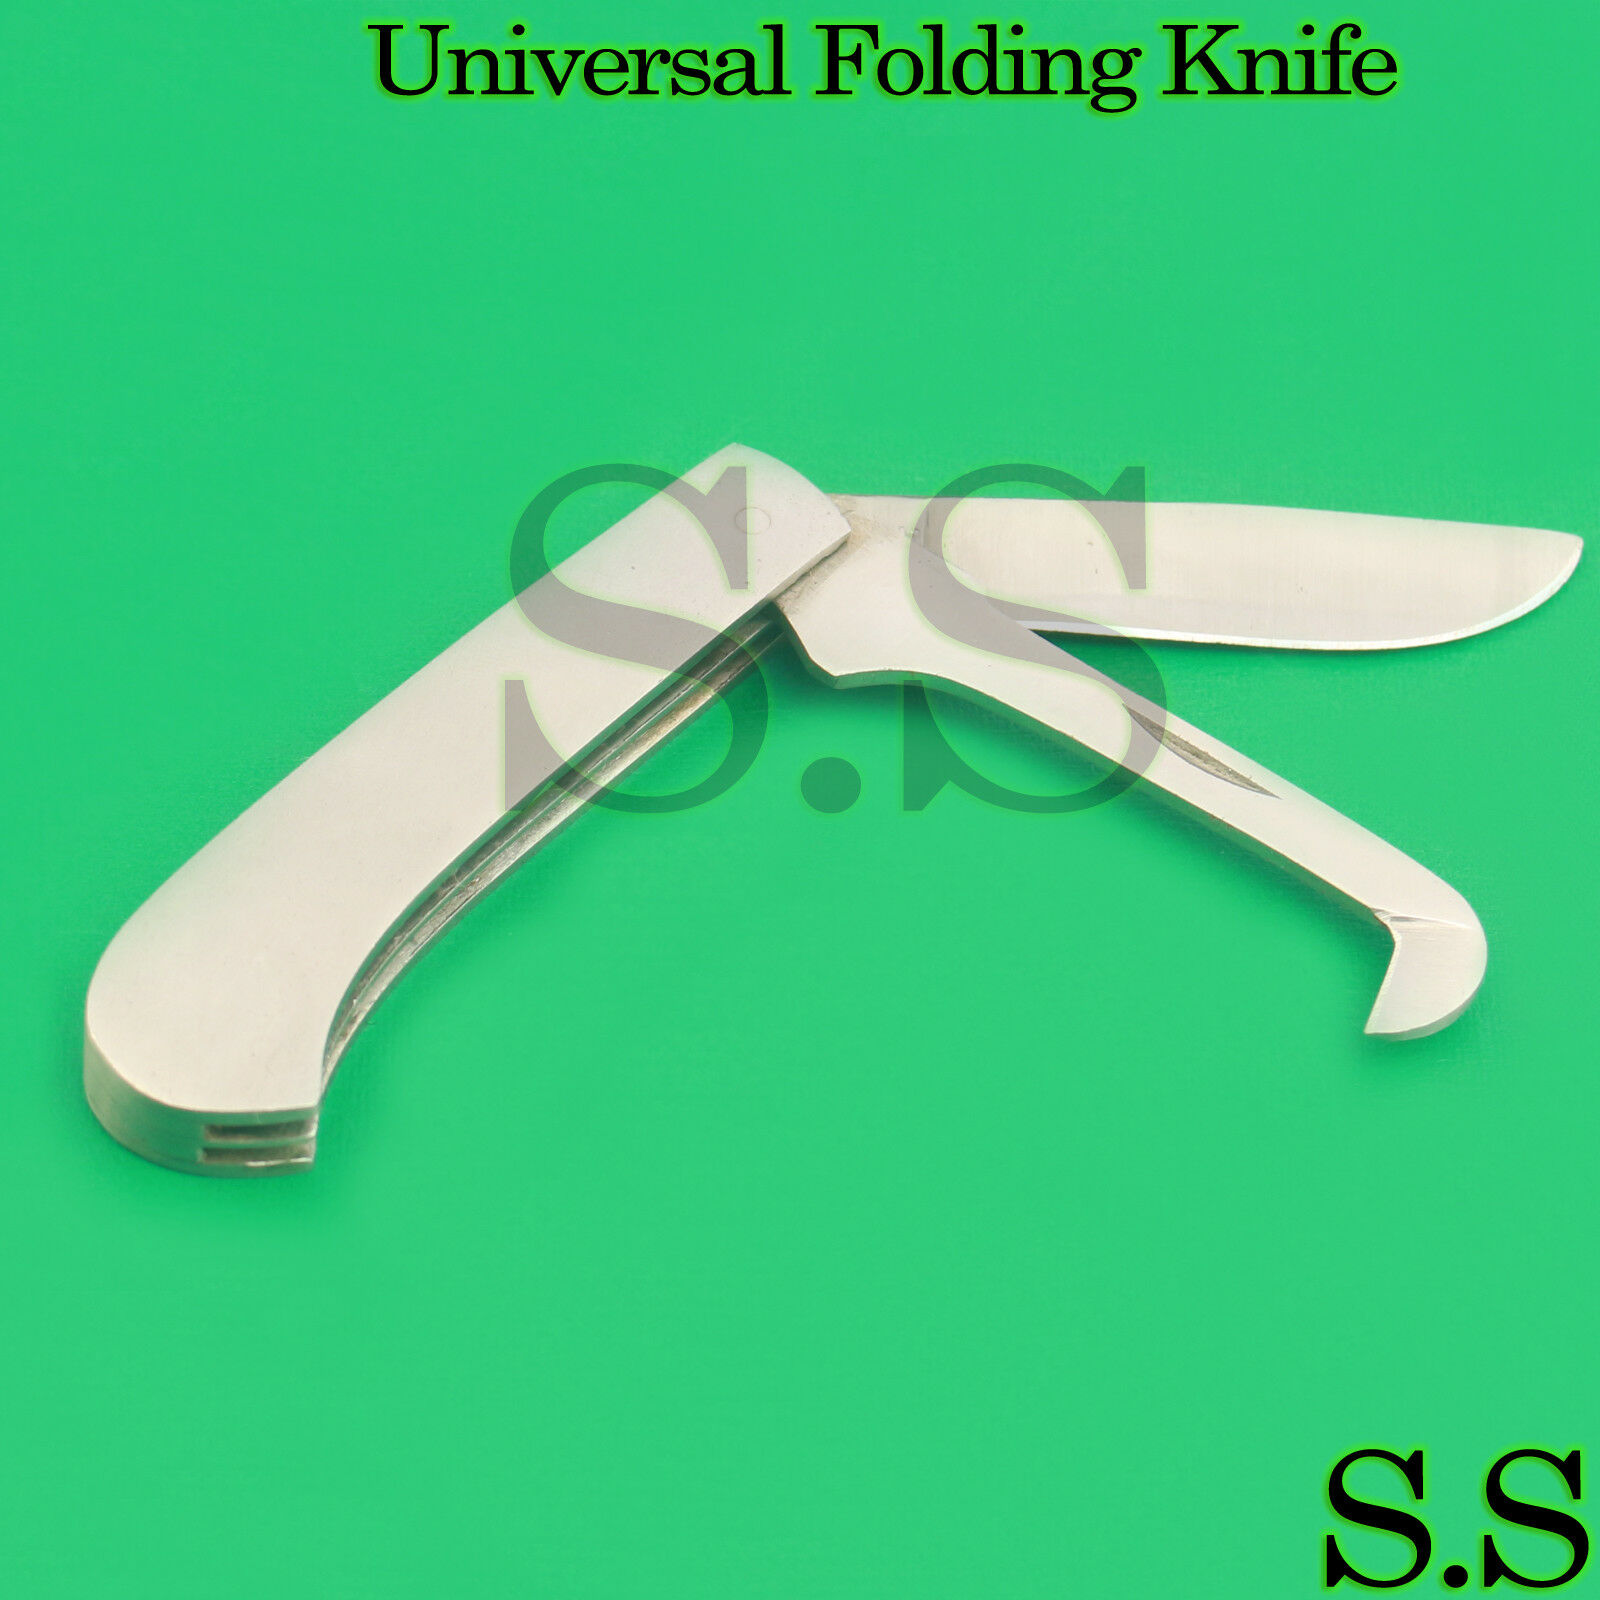 10 Pcs Universal Folding Knife Two Blades Blades Two Veterinary Stainless Steel Instruments 47ca51